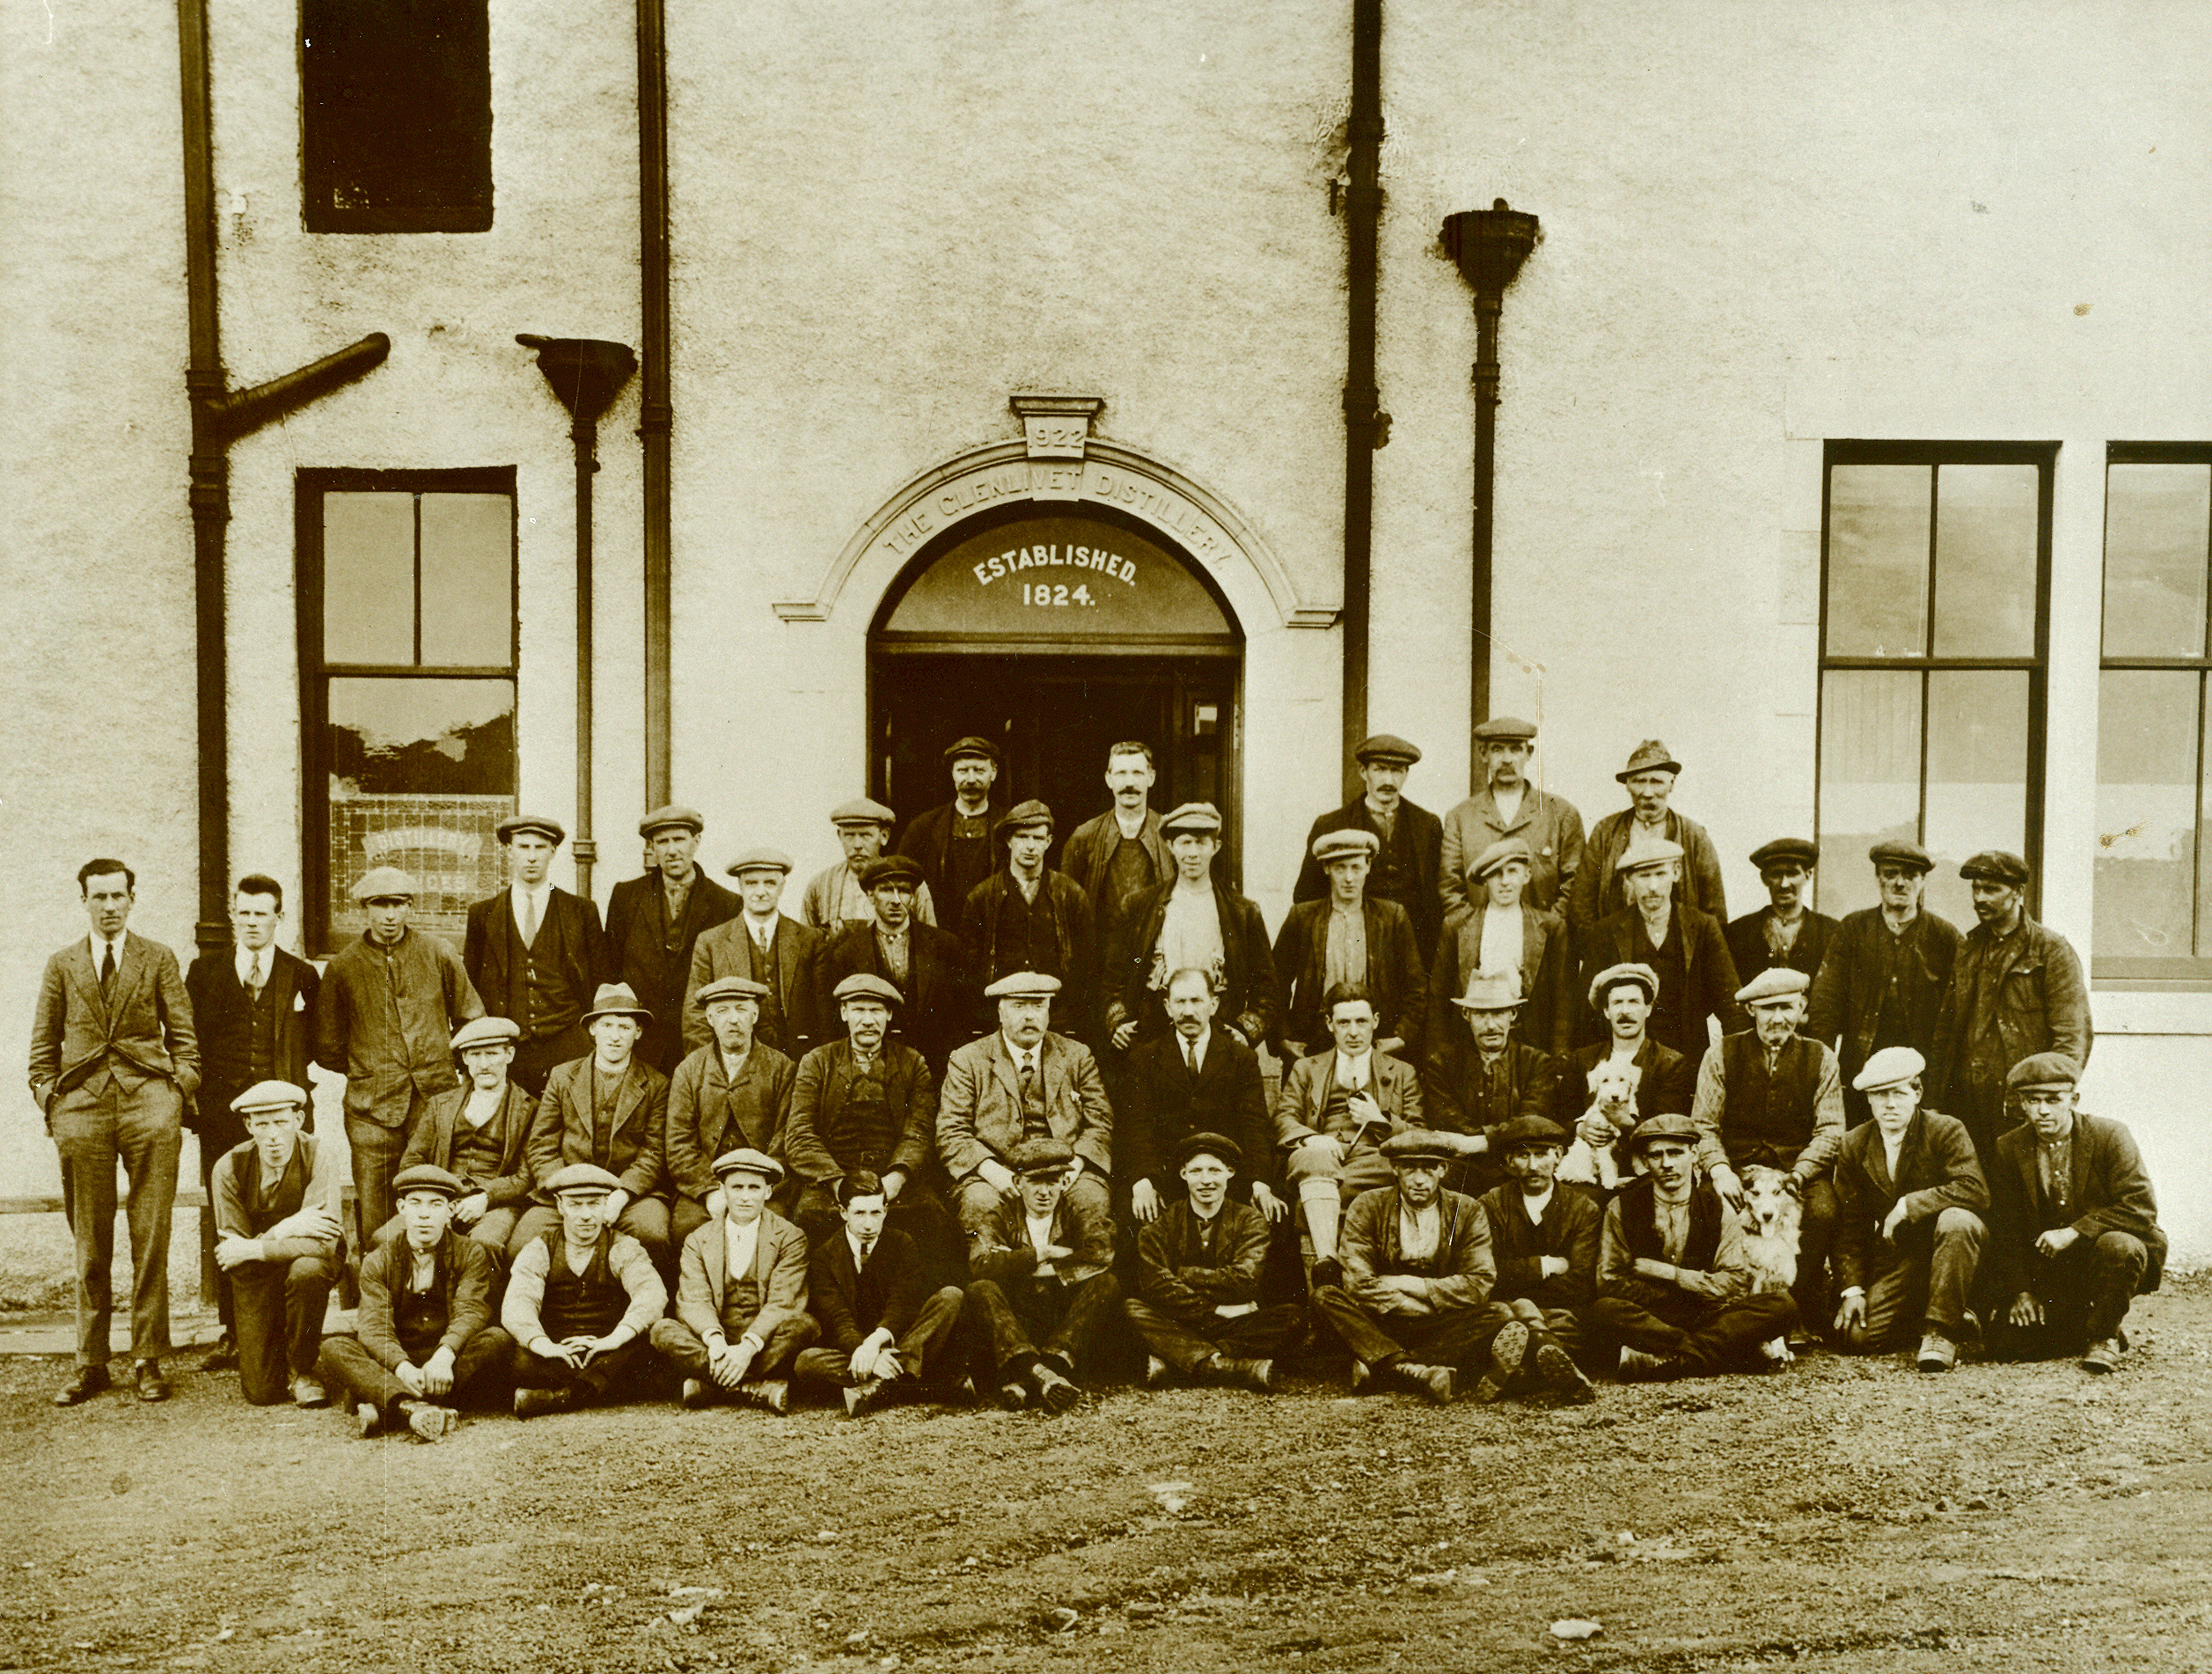 Staff at the Glenlivet Distillery in 1924, photo courtesy of Chivas Brothers archive